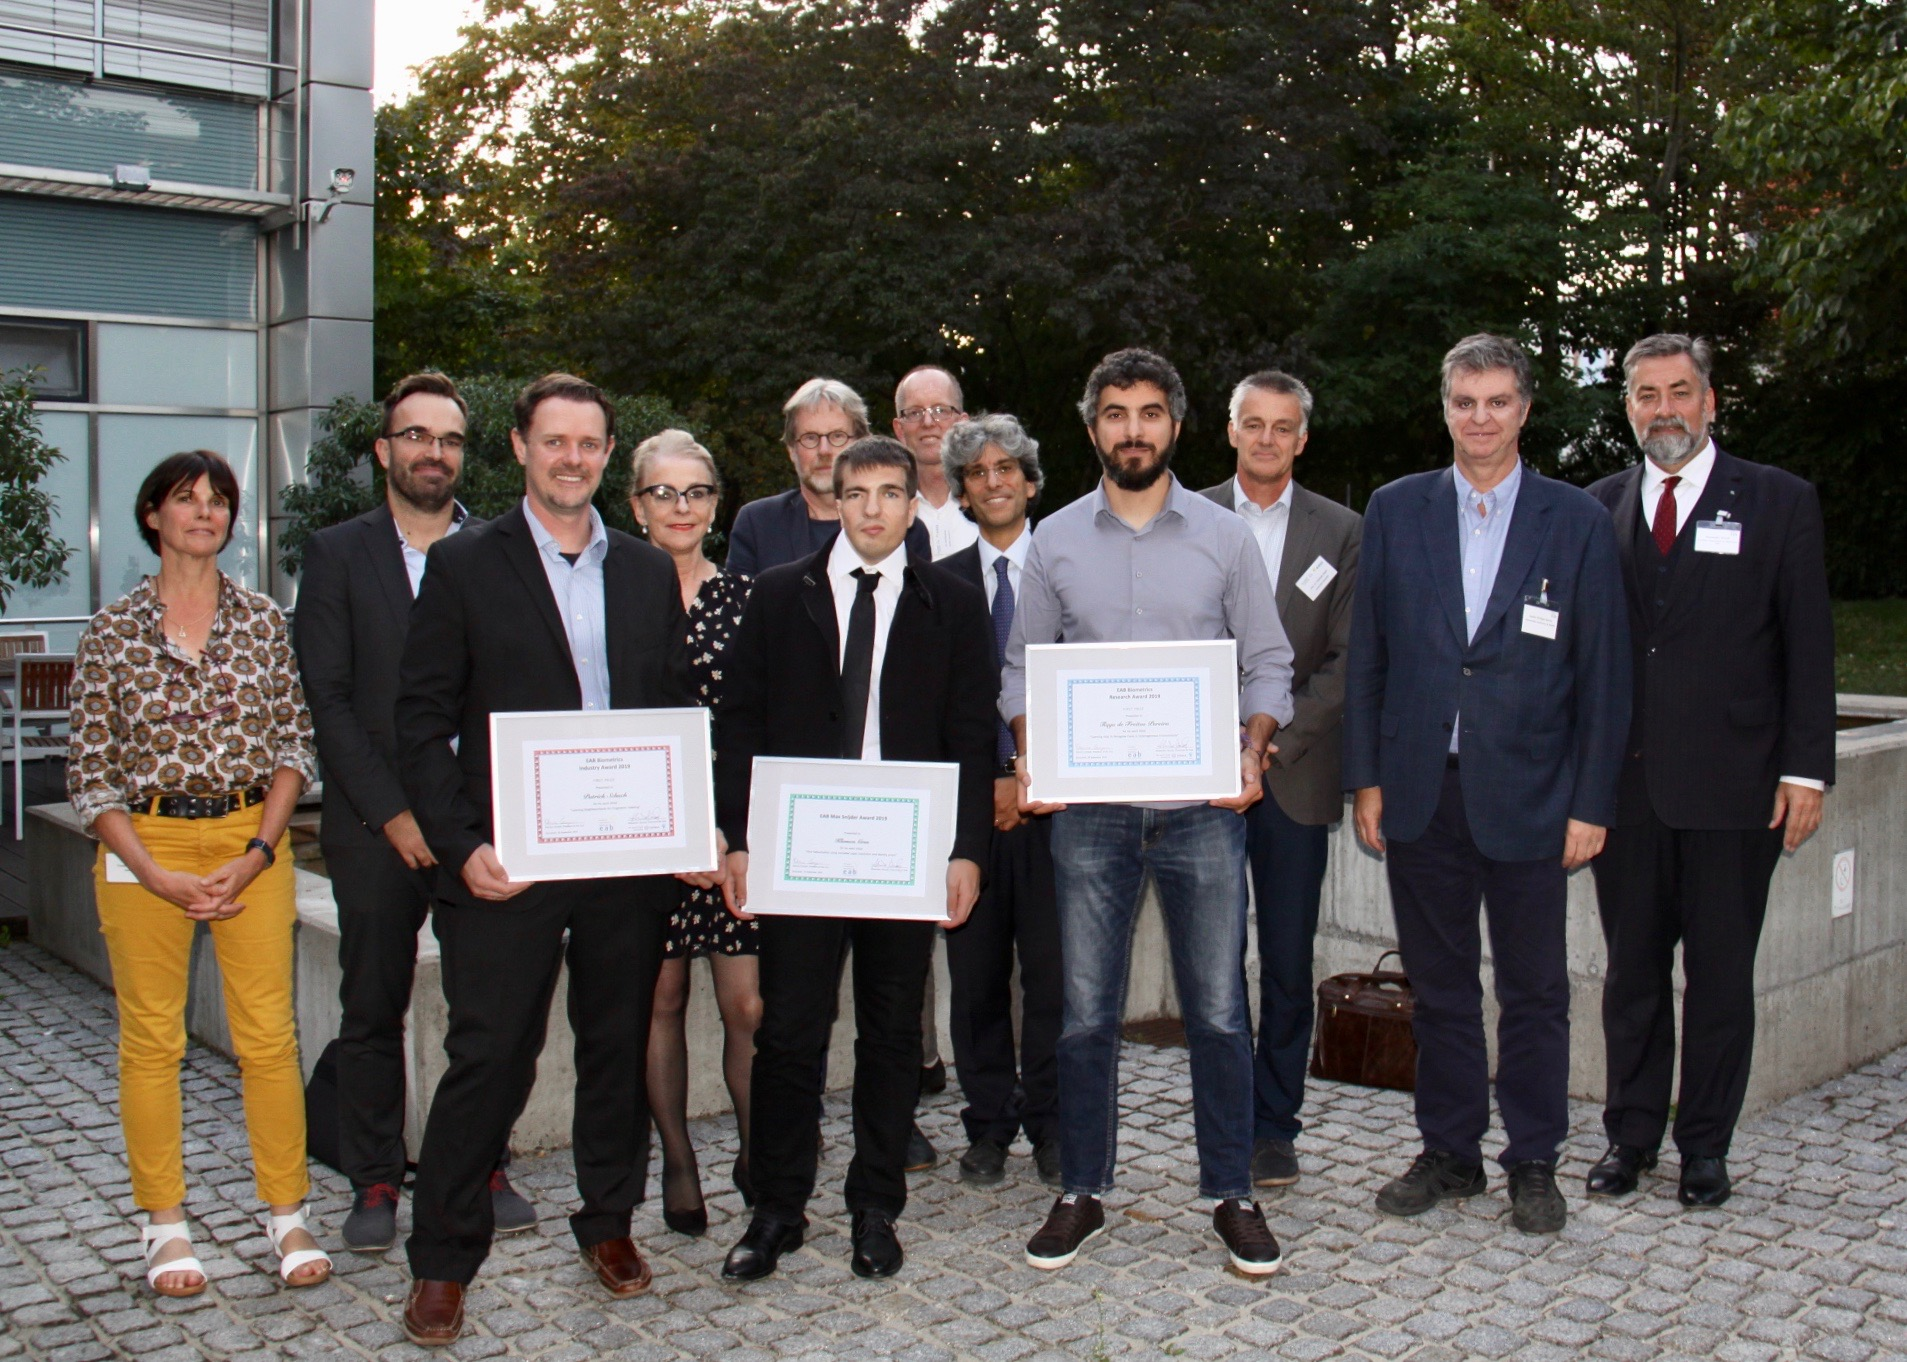 [Photo] The winners of the European Biometrics Max Snijder, Research, and Industry Awards 2019 Patrick Schuch, Klemen Grm and Tiago de Freitas Pereira together with Claude Bauzou (IDEMIA), Vitomir Struc (University of Ljubljana), Marianne Volonte (mymarc), Raymond Veldhuis (University of Twente), Tom Kevenaar (GenKey), Patrizio Campisi (University University of Roma TRE), Christoph Busch (Norwegian University of Science and Technology) and Alexander Nouak (EAB chair)